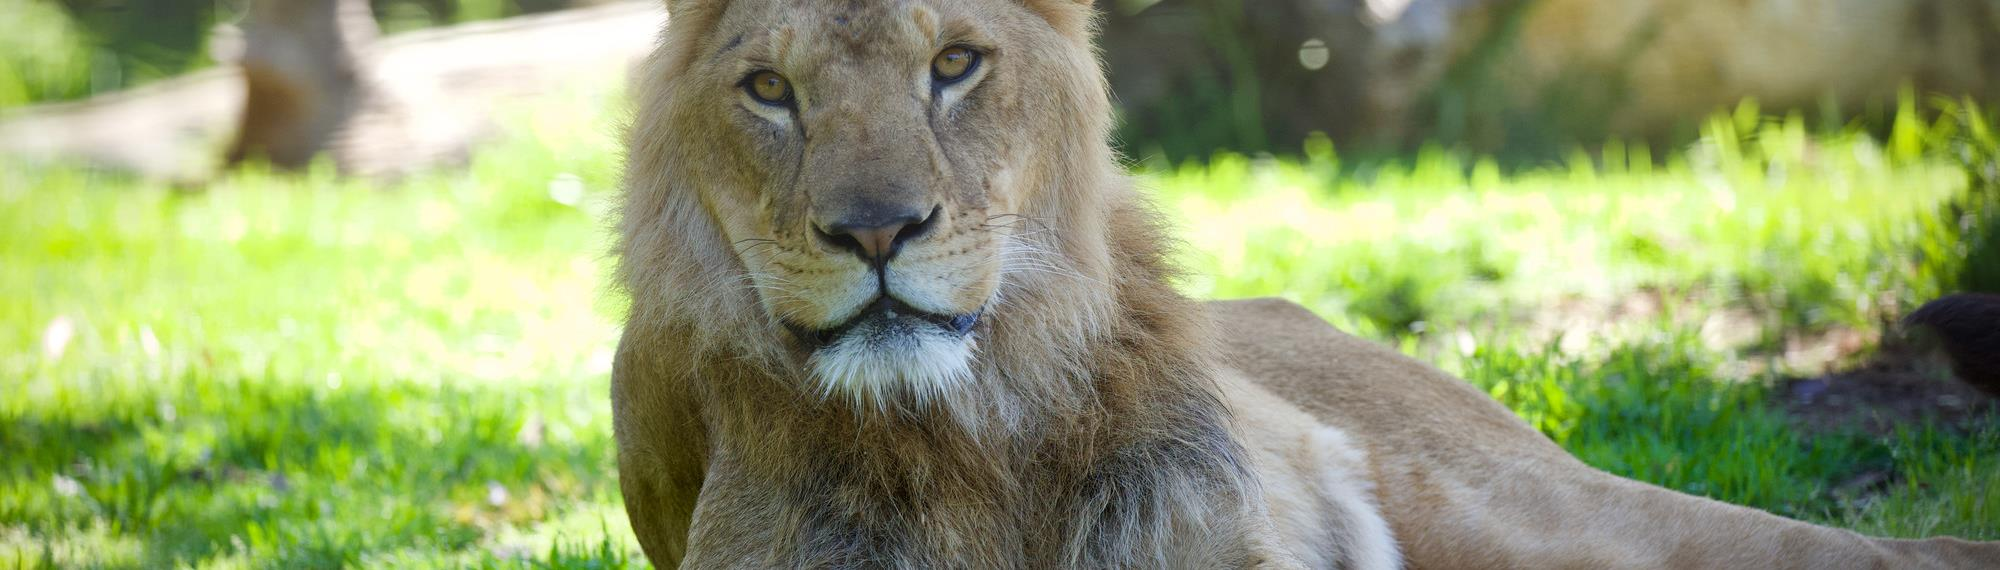 Zuberi the lion laying on the grass in the shade.